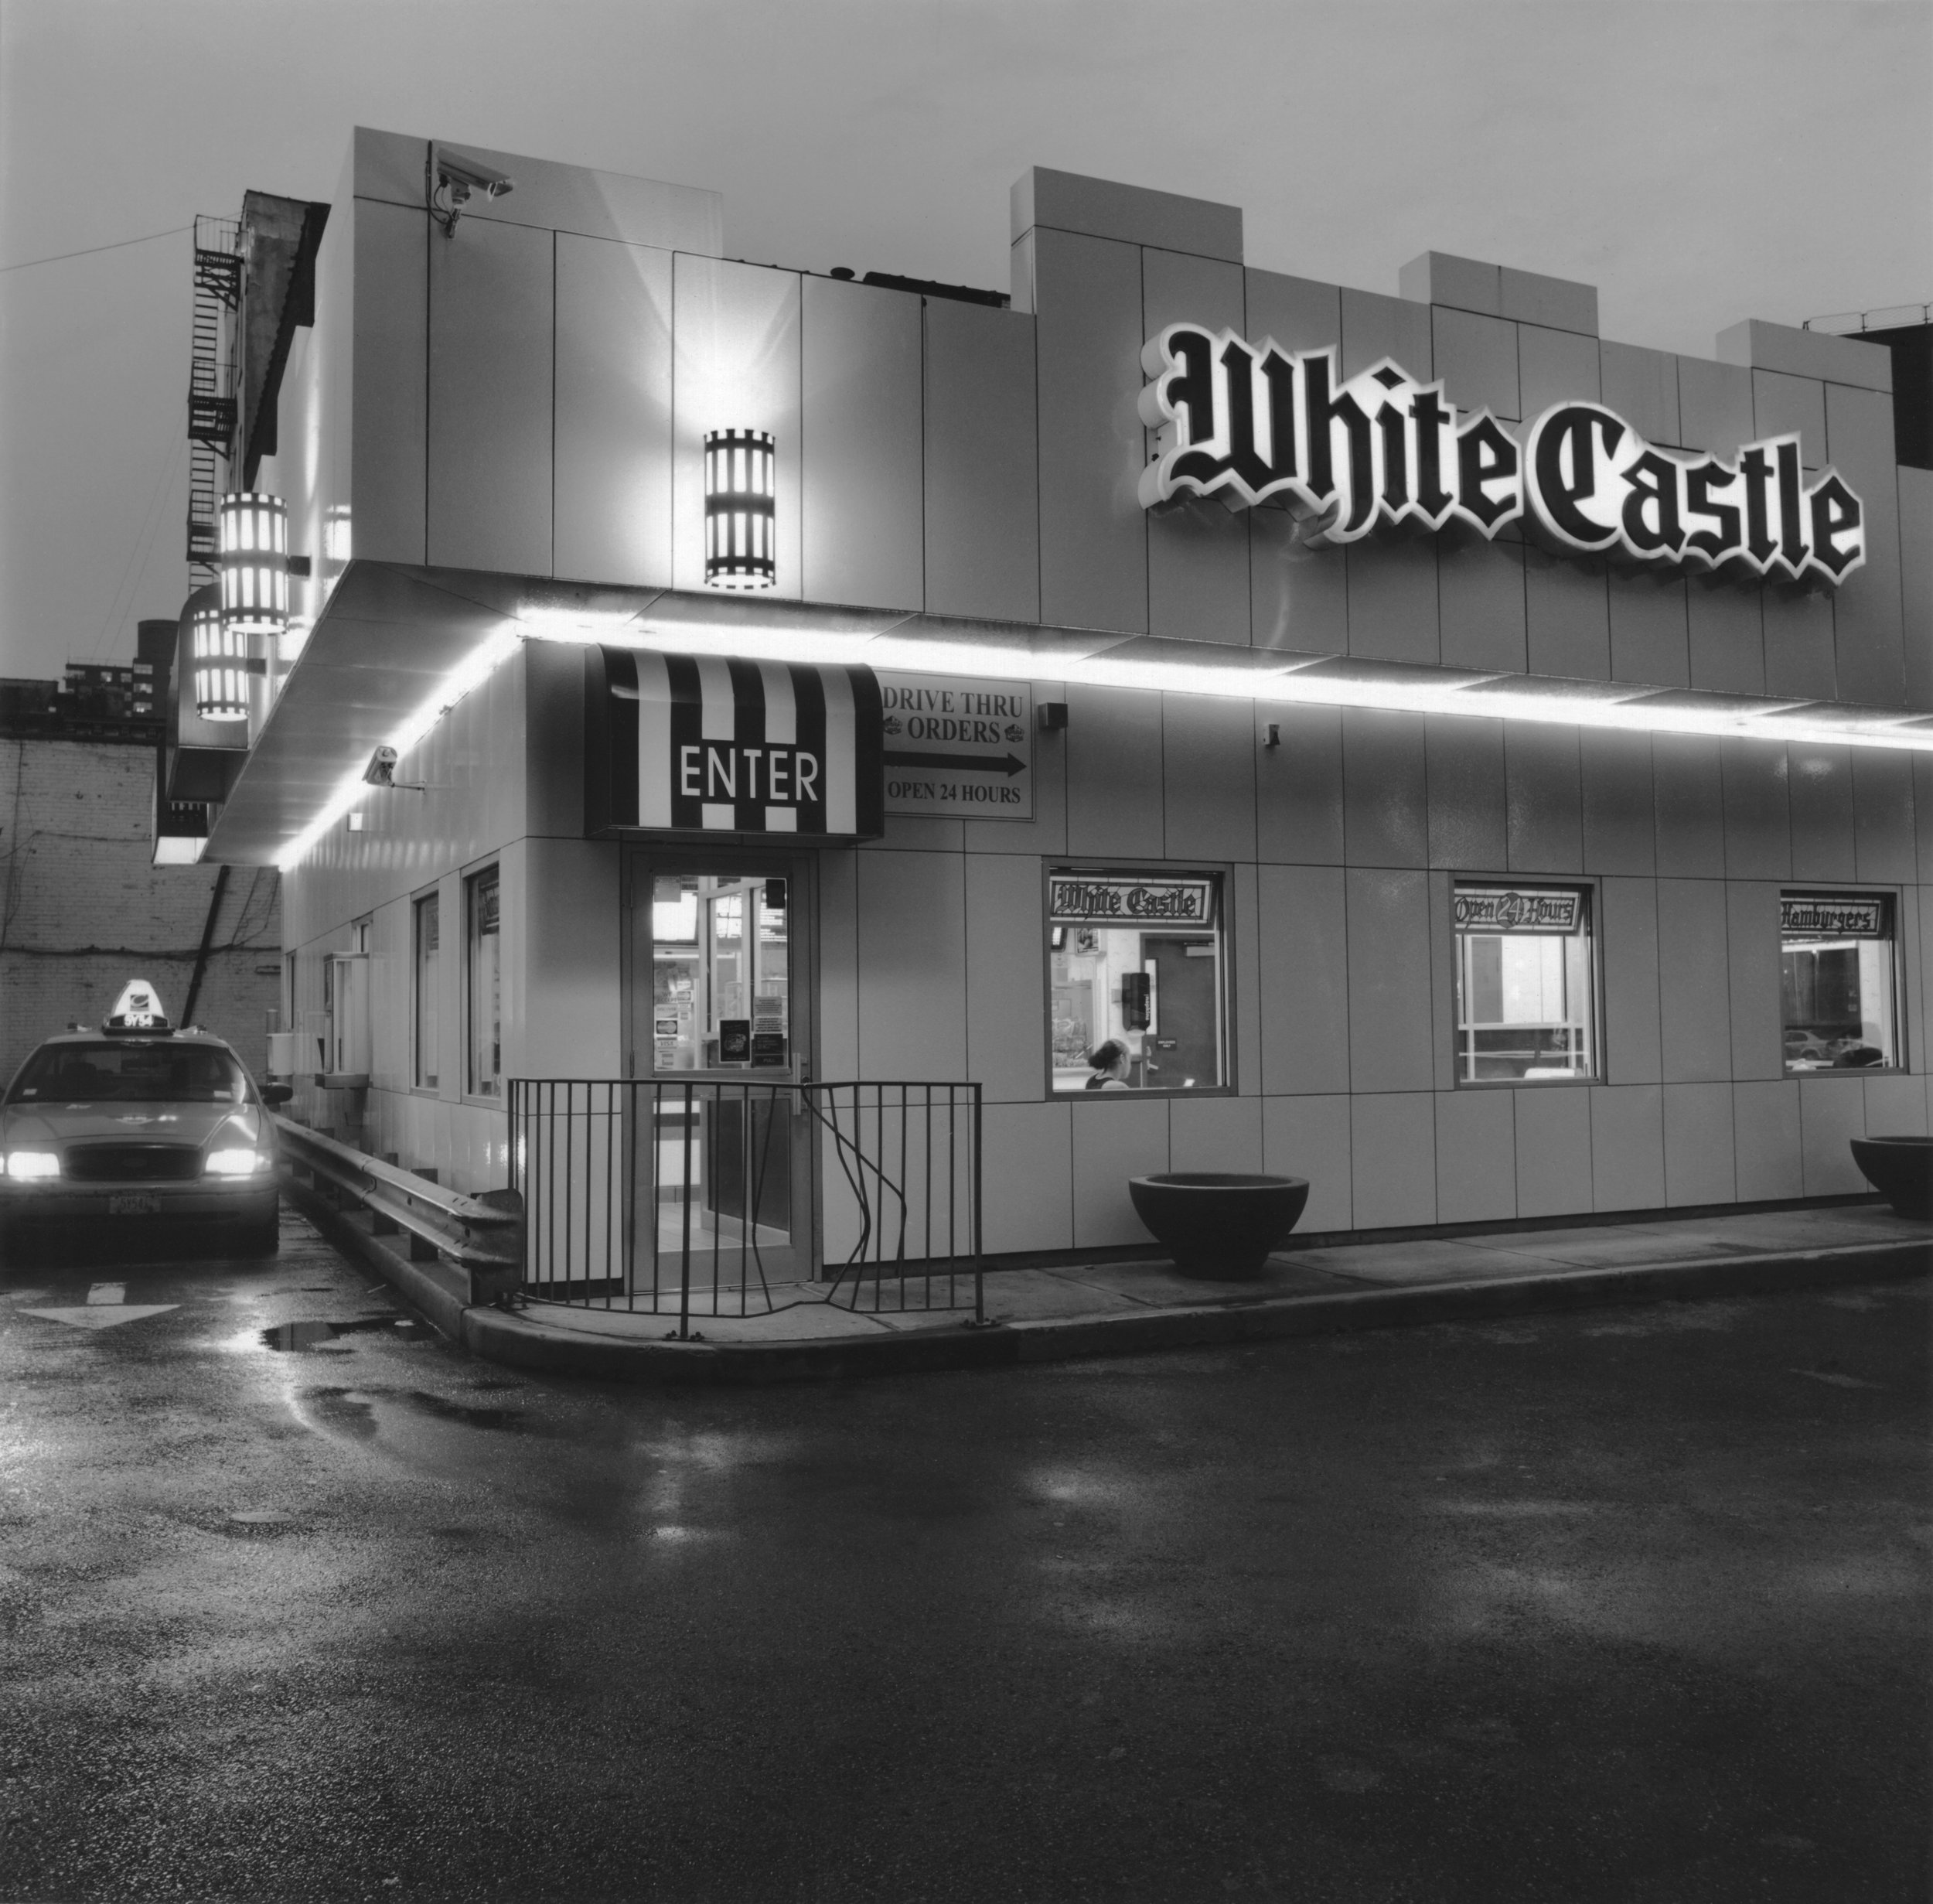 Whitecastle, Harlem Nights, 2005